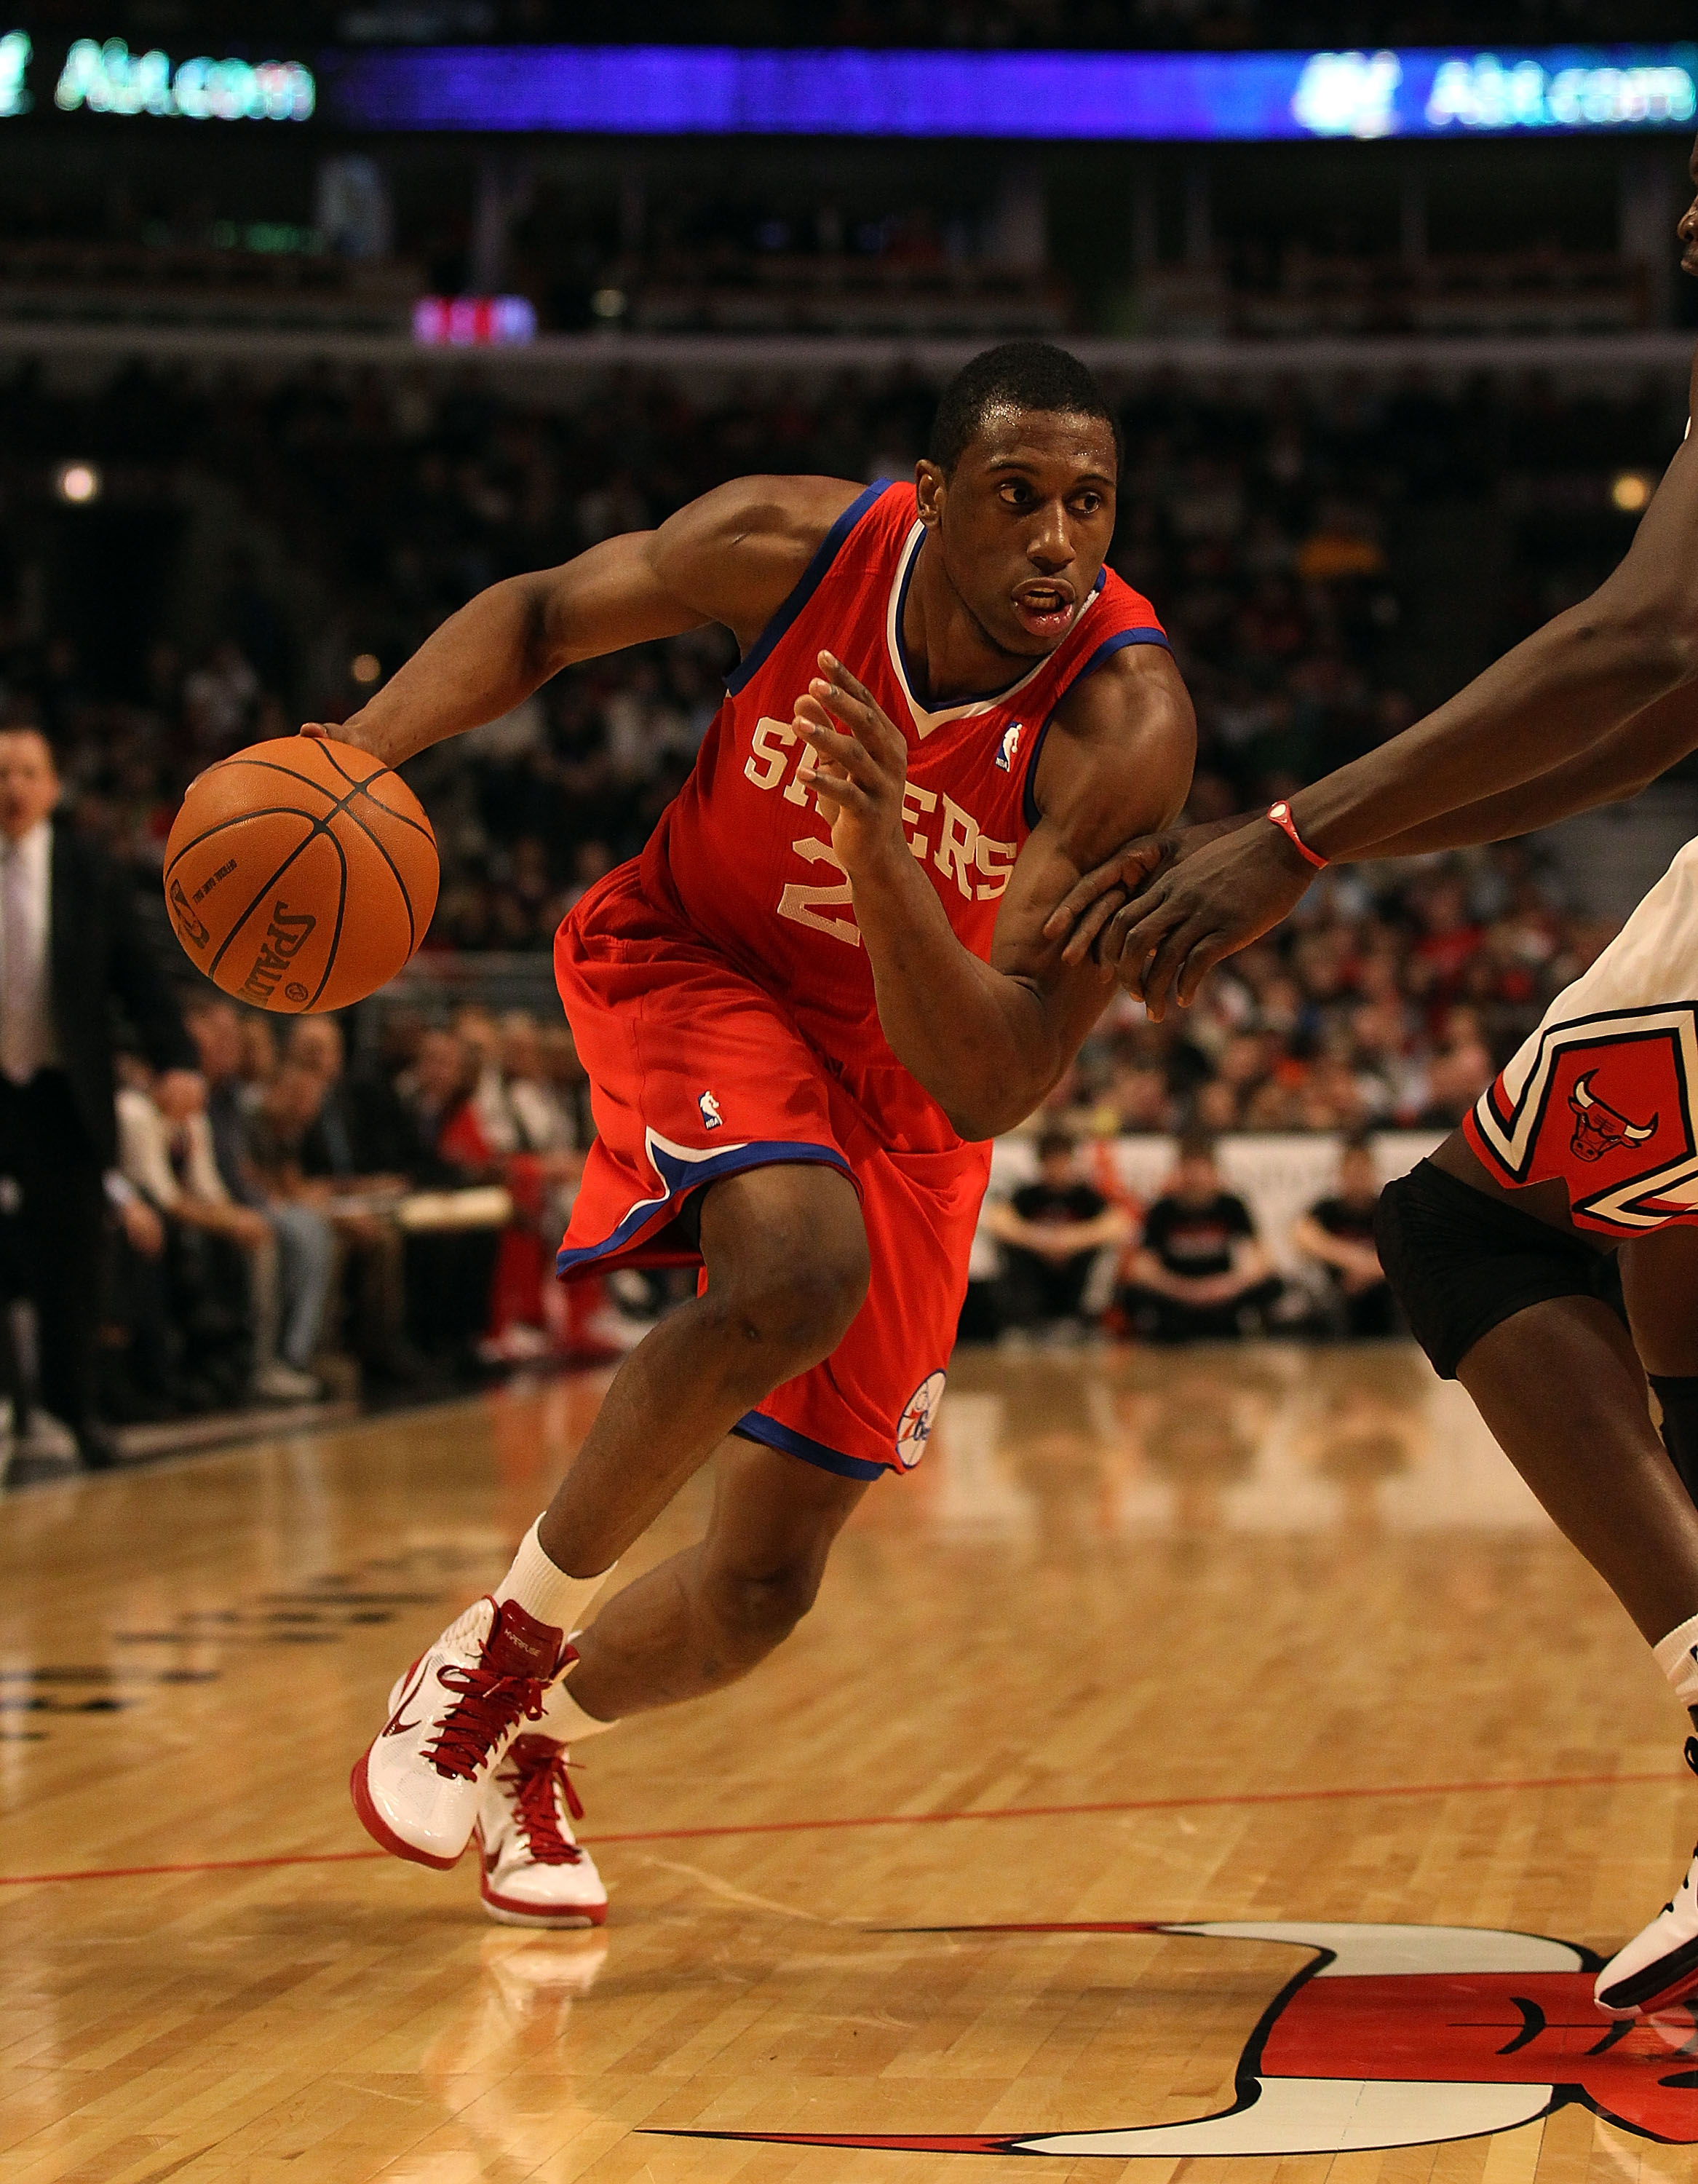 CHICAGO, IL - DECEMBER 21: Thaddeus Young #21 of the Philadelphia 76ers drives to the basket against the Chicago Bulls at the United Center on December 21, 2010 in Chicago, Illinois. The Bulls defeated the 76ers 121-76. NOTE TO USER: User expressly acknow